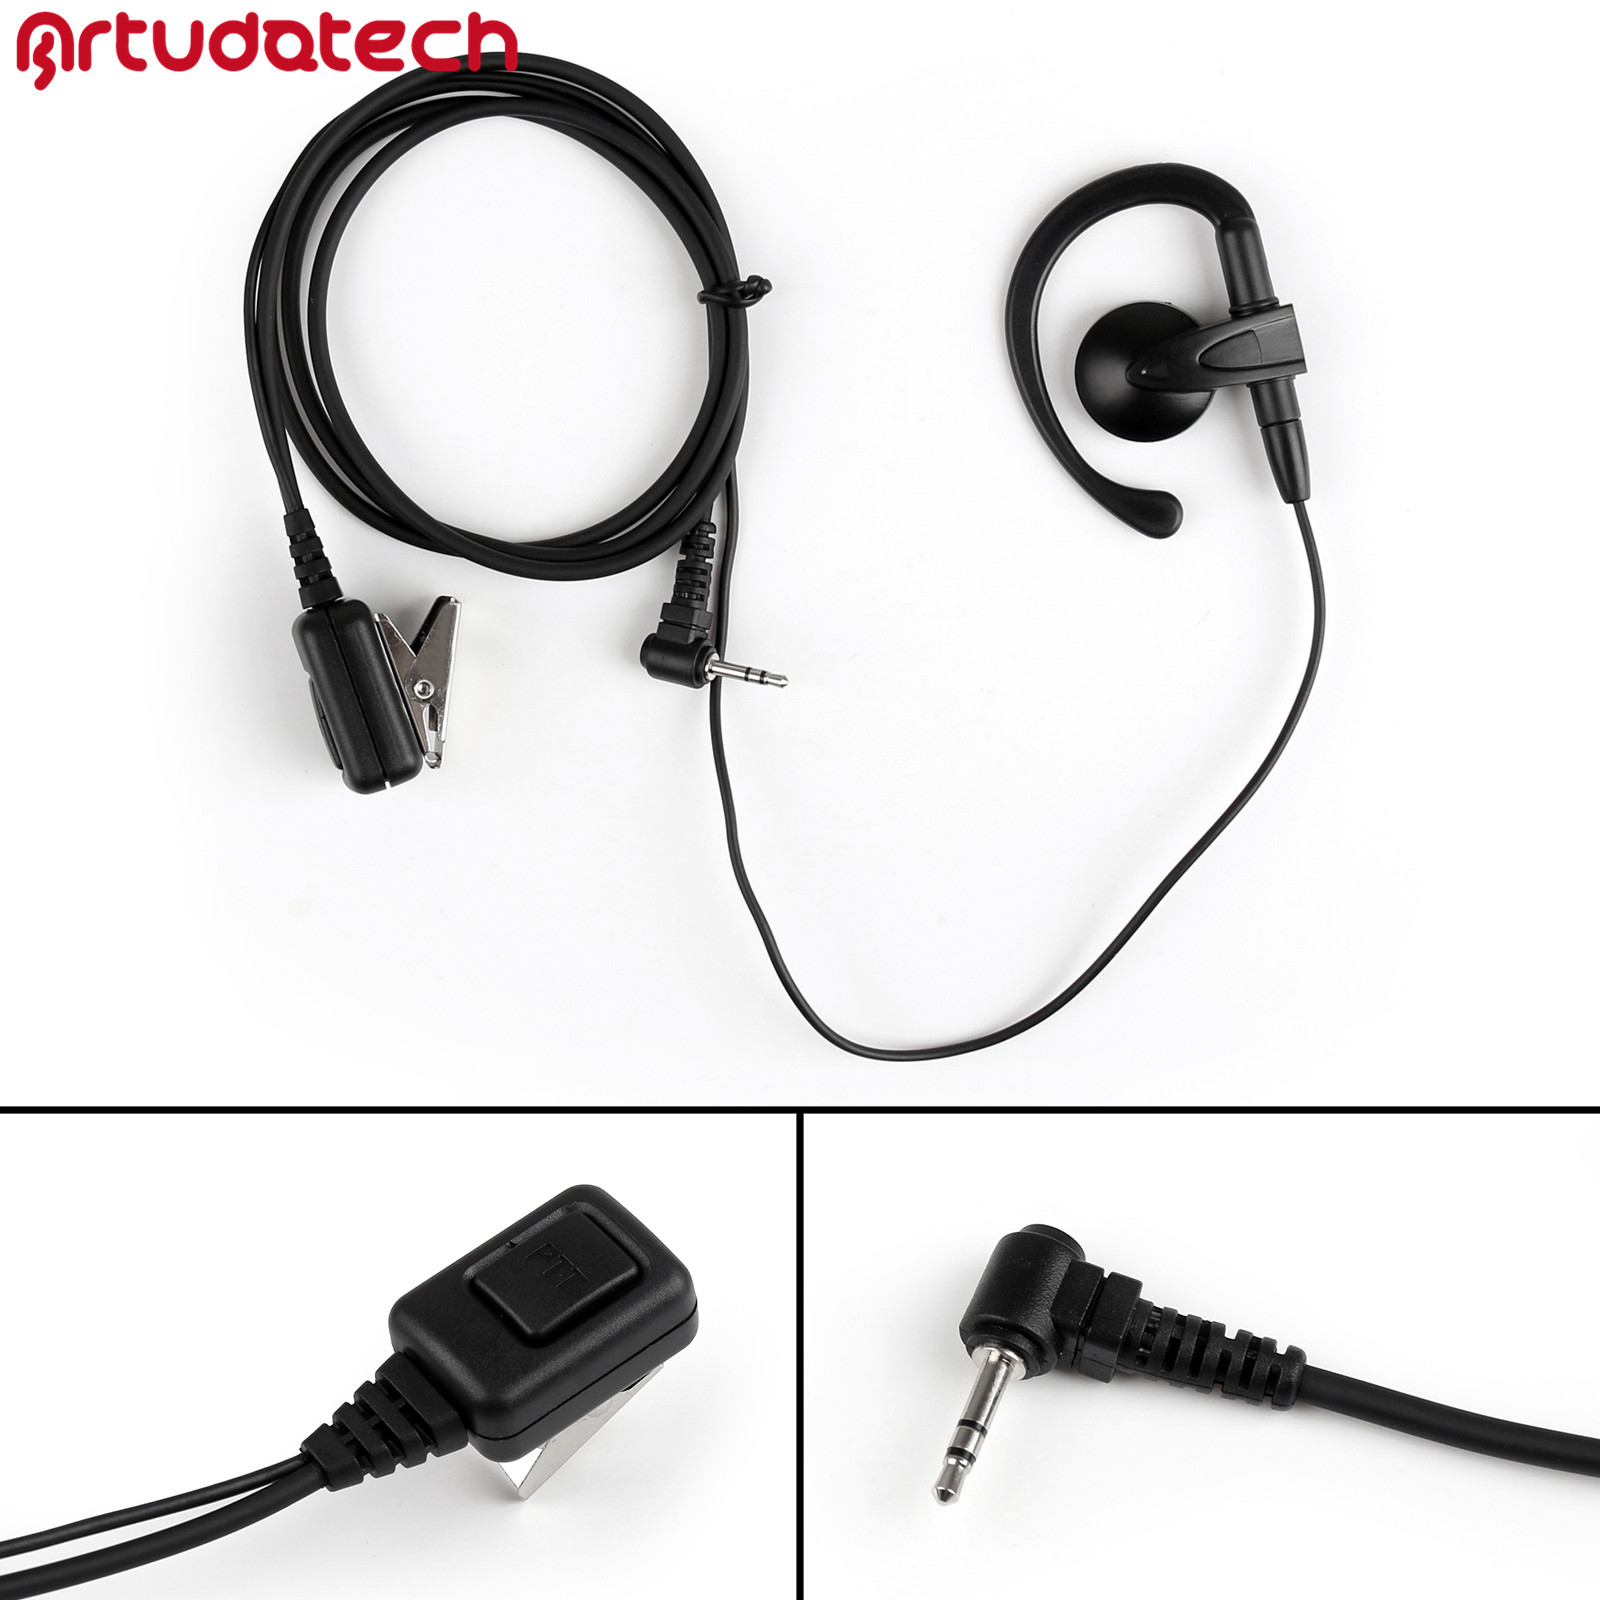 Artudatech 1Pcs 2.5mm Earhook Earpiece Headset PTT Mic For <font><b>Motorola</b></font> T6200 T6220 <font><b>T5422</b></font> Walkie Talkie Accessories image